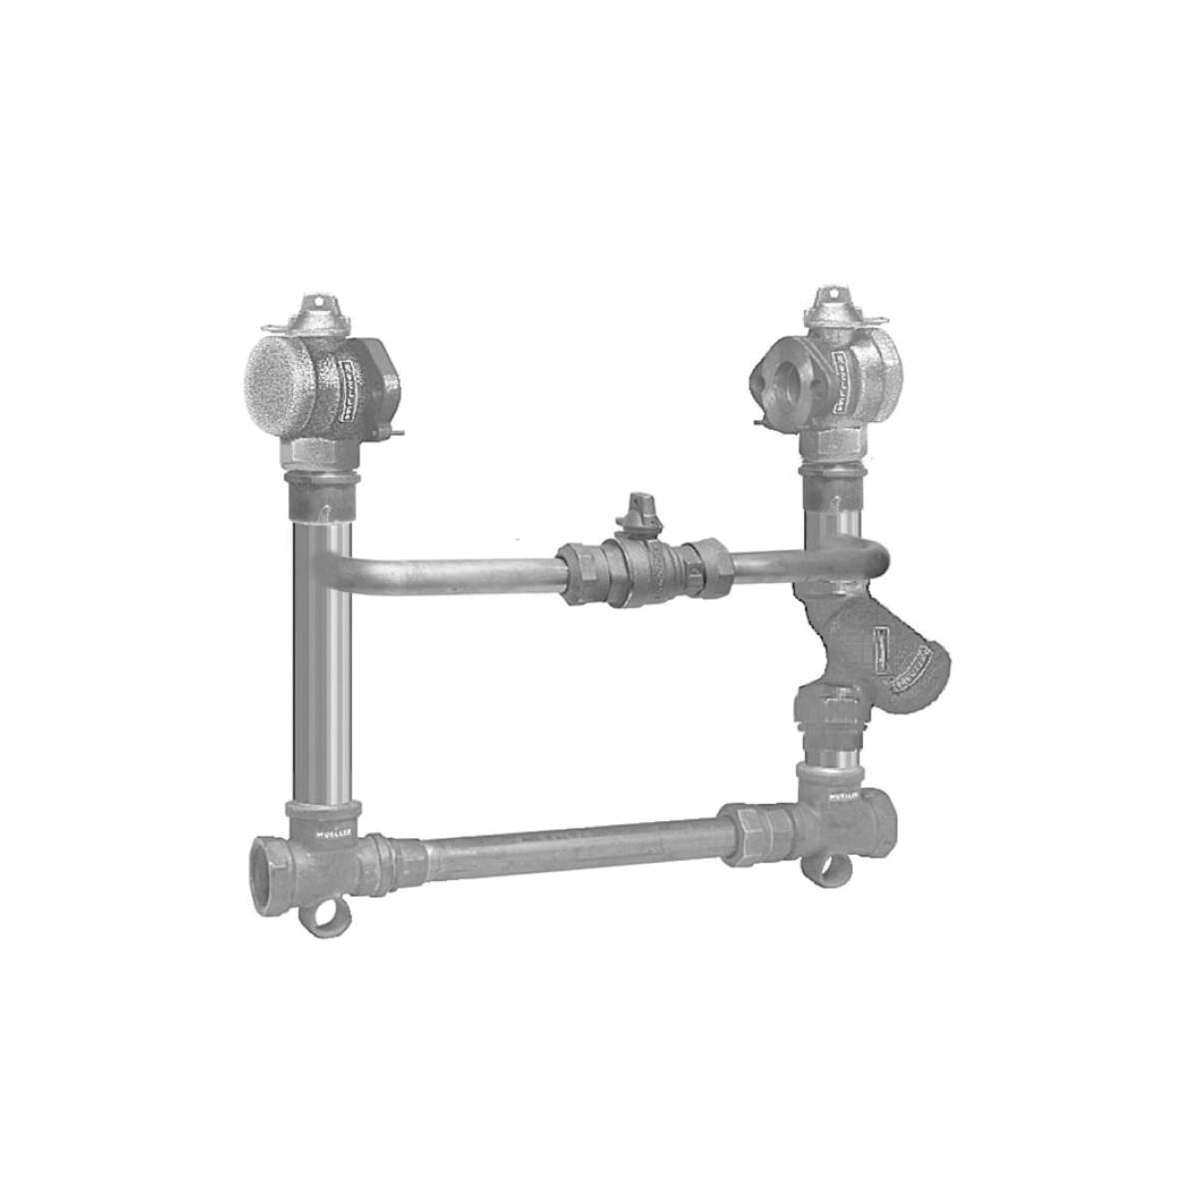 Mueller Co B-2423-99000N Meter Setter, 1-1/2 or 2 in, 1-1/2 or 2 in Flanged Connection, 21.5 or 26.63 in L